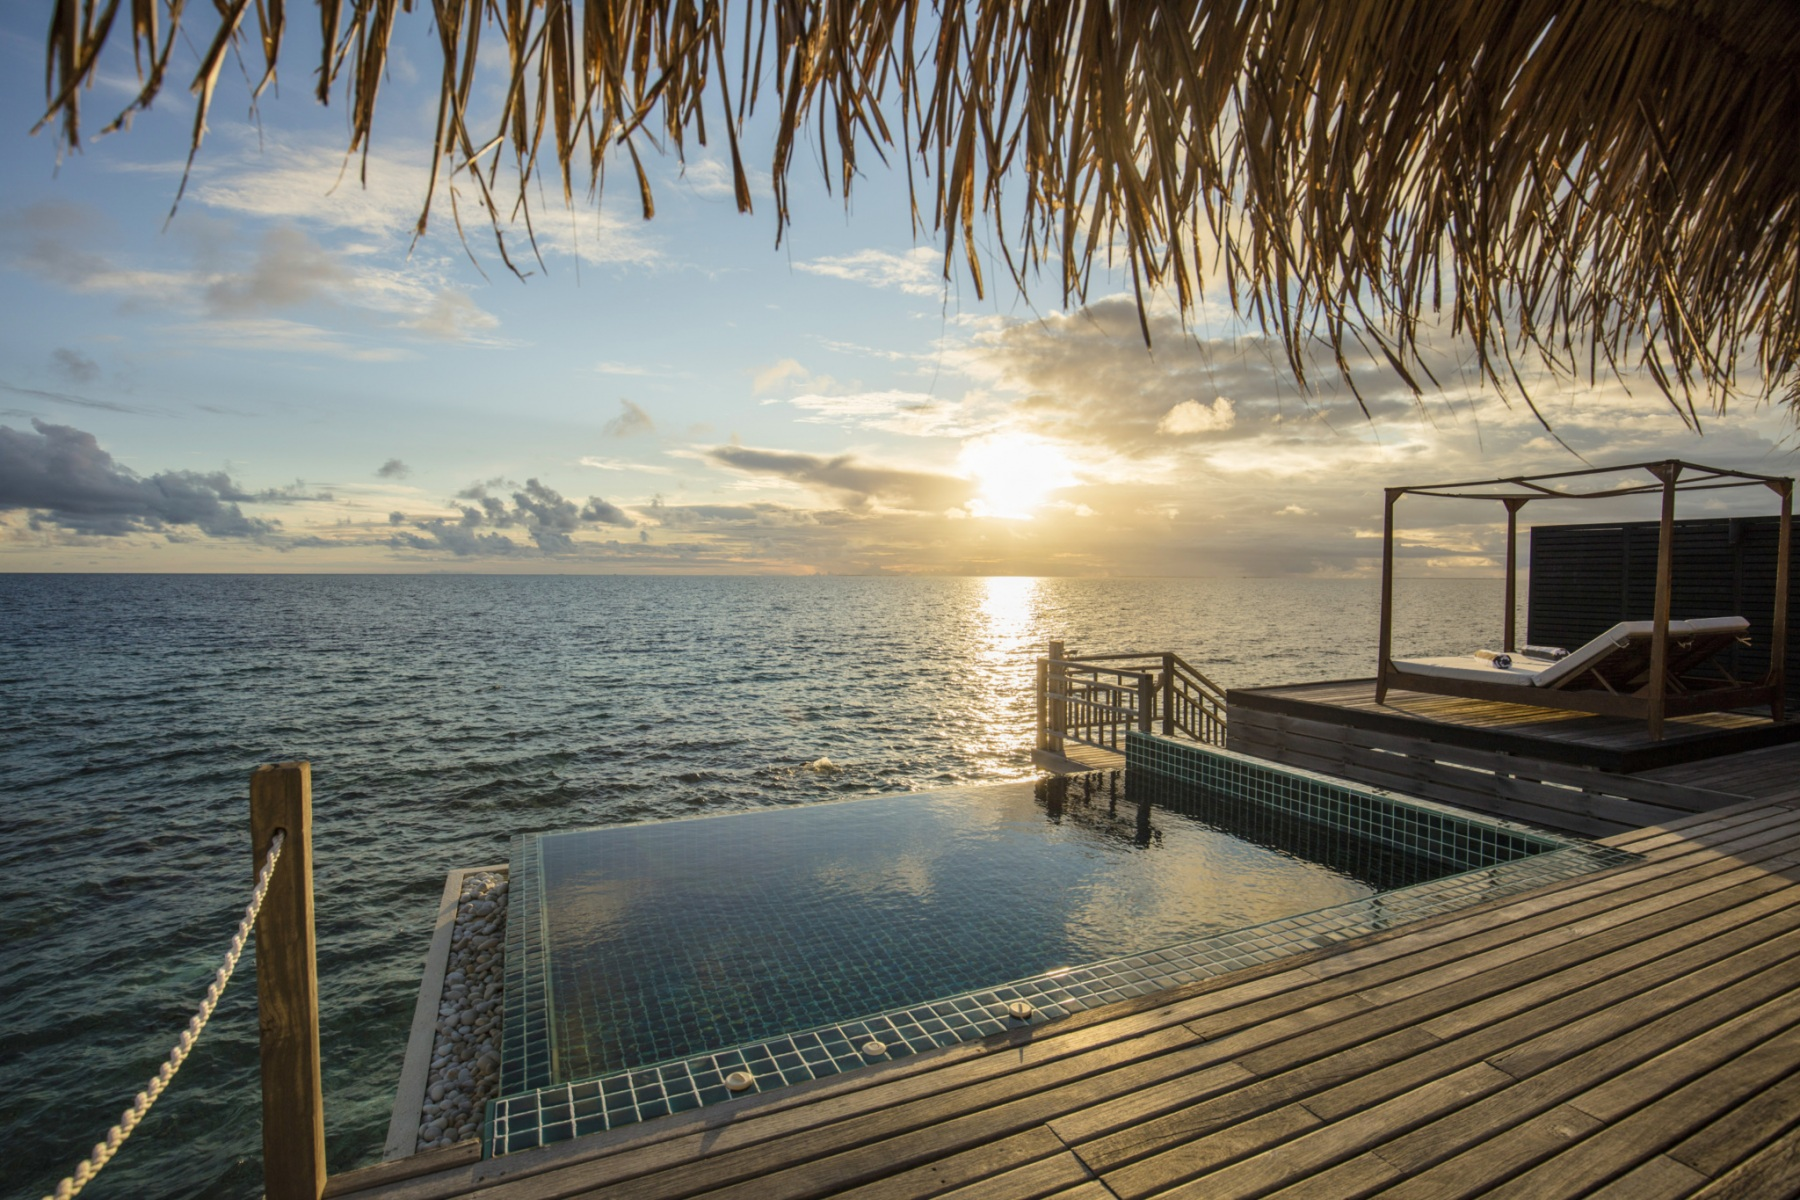 sunset-overwater-villa-with-private-pool-view